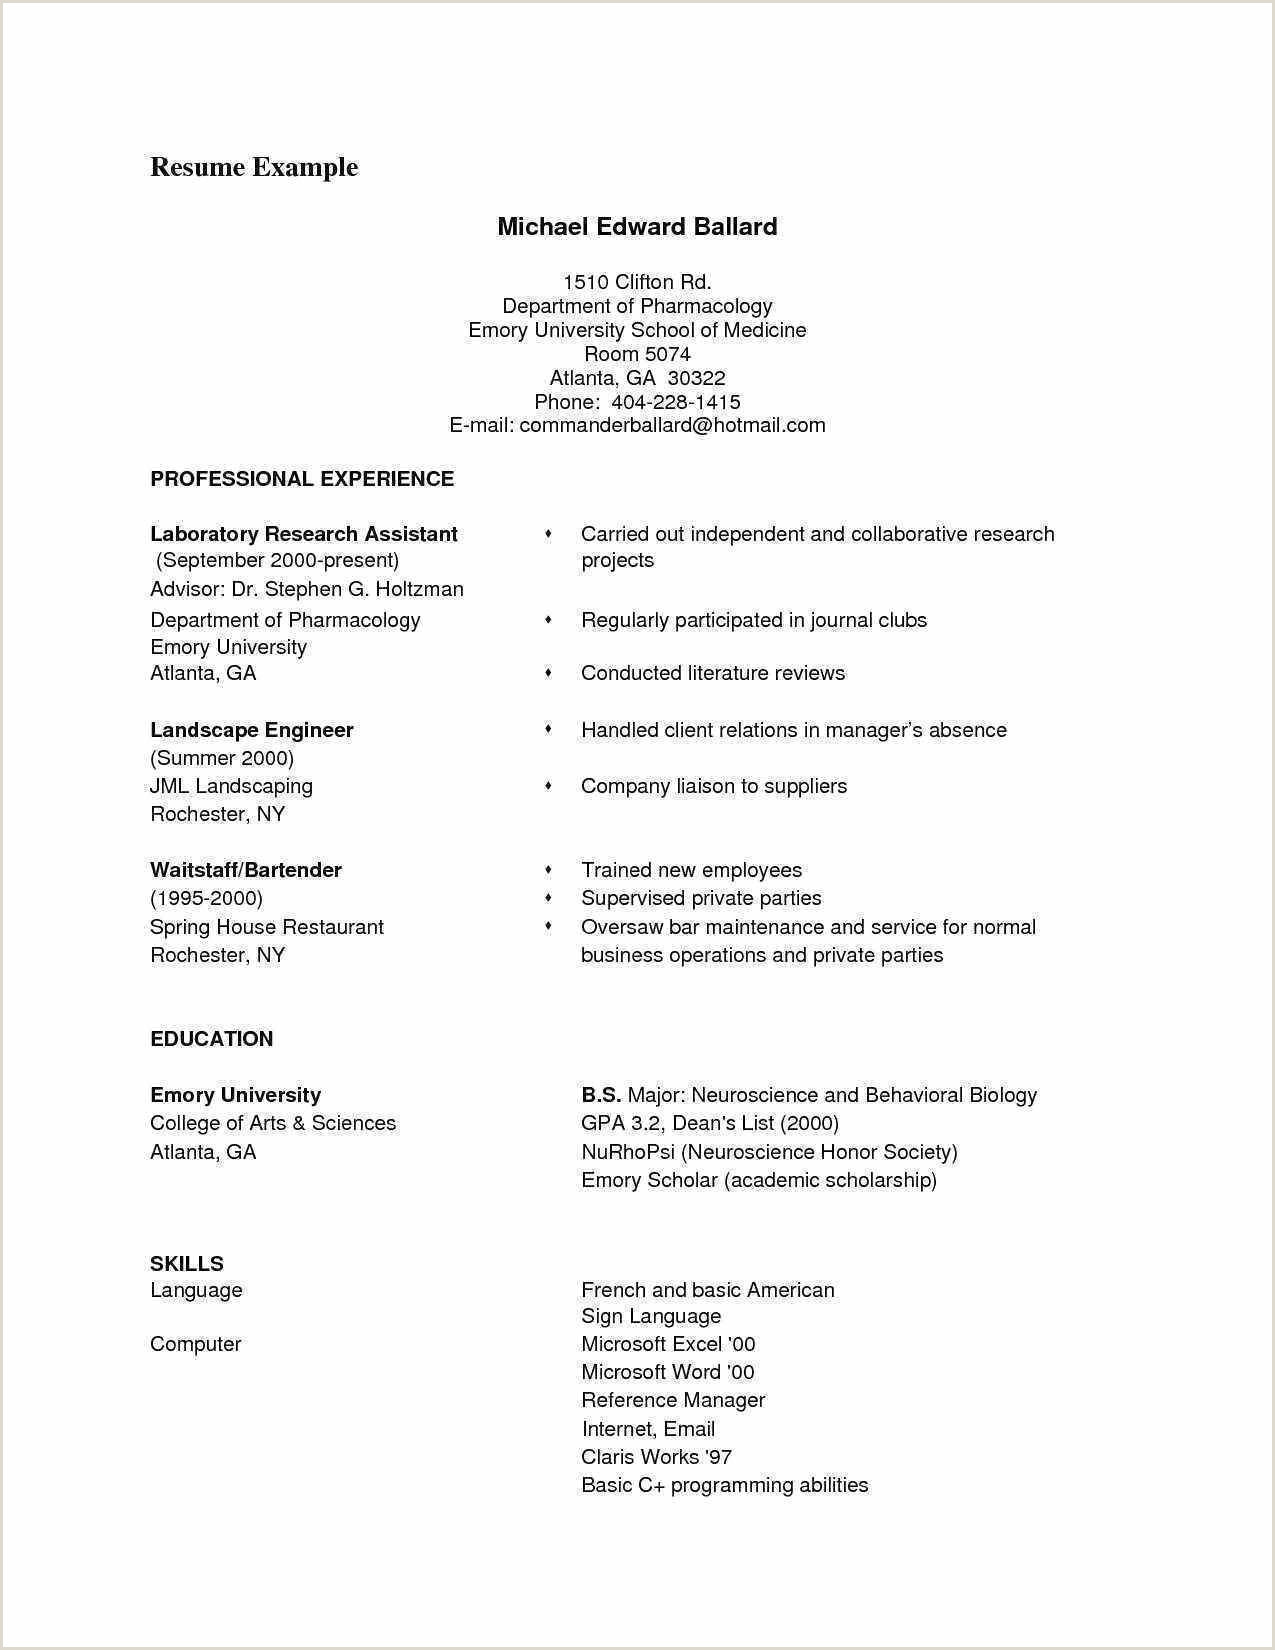 Simple Resume Layout Sample Download Latest Resume format